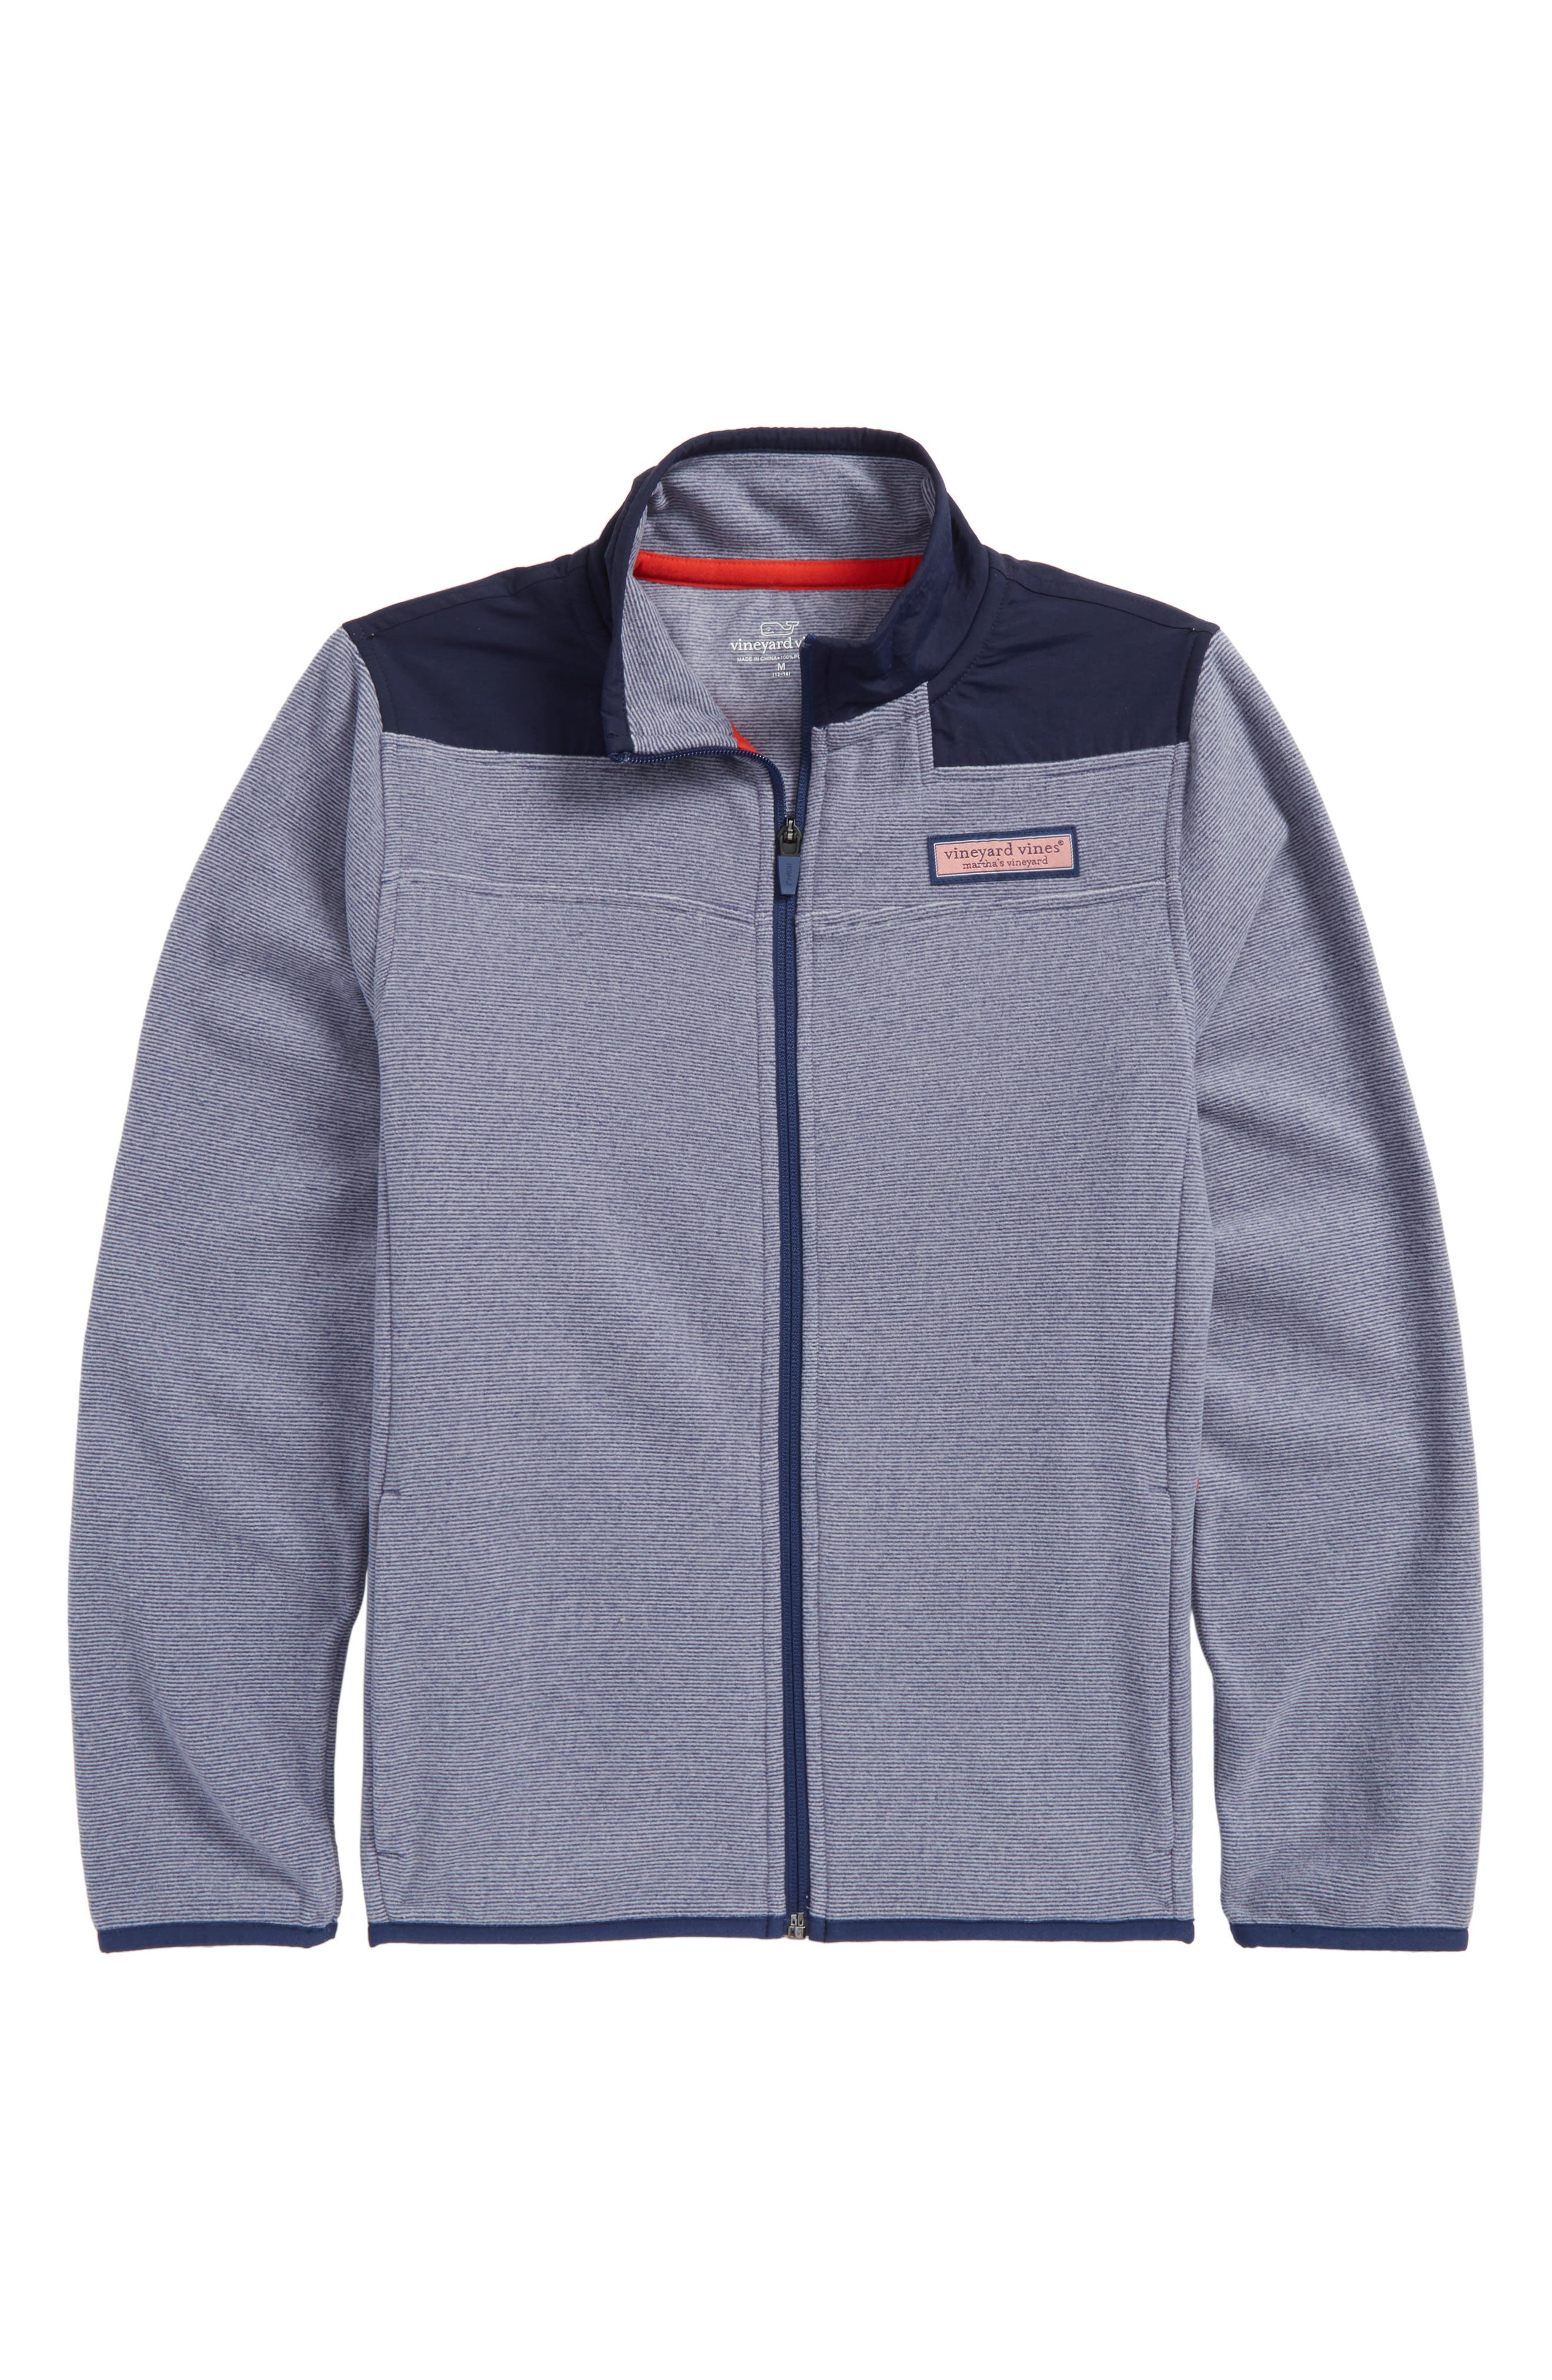 End on End Fleece Jacket,                         Main,                         color, 400